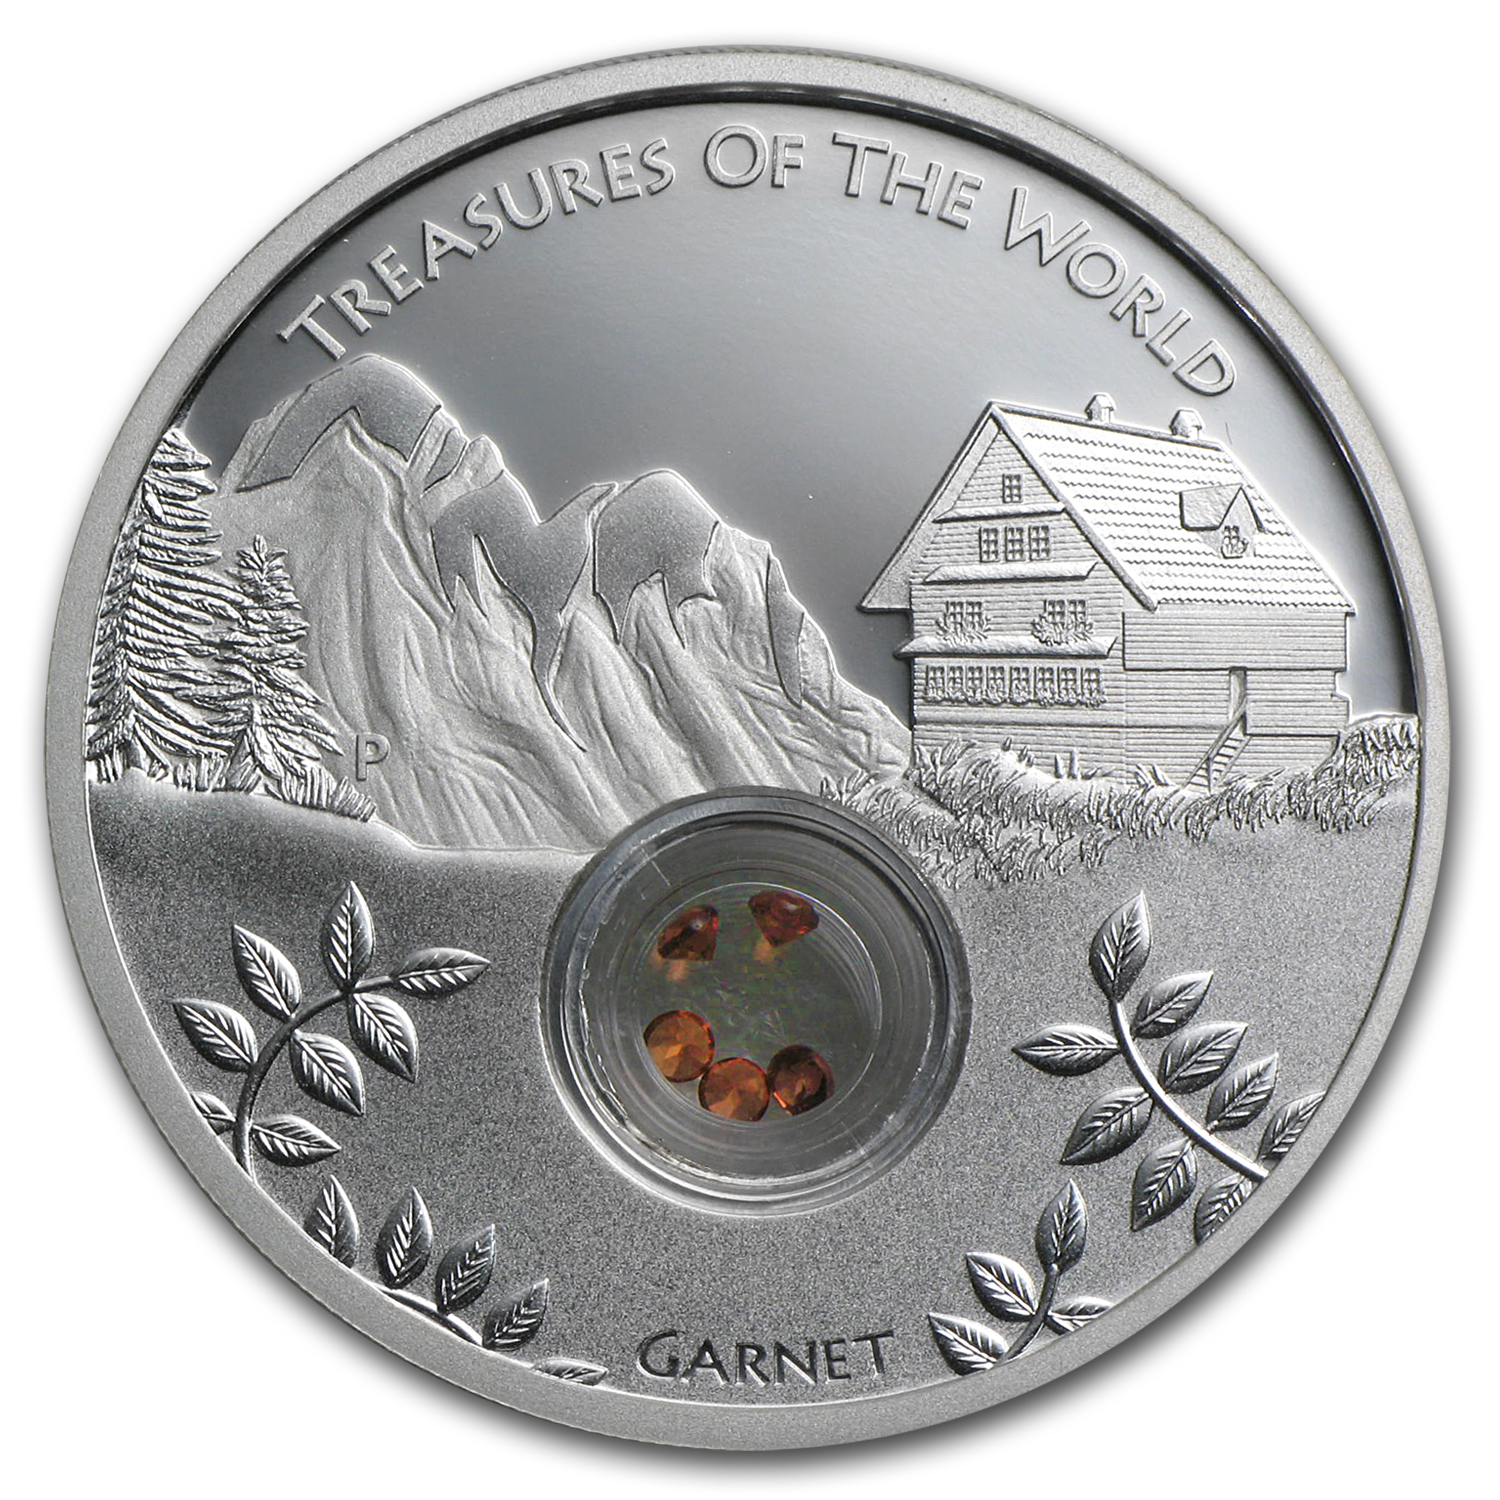 2013 1 oz Silver Treasures of the World Locket Proof (Europe)